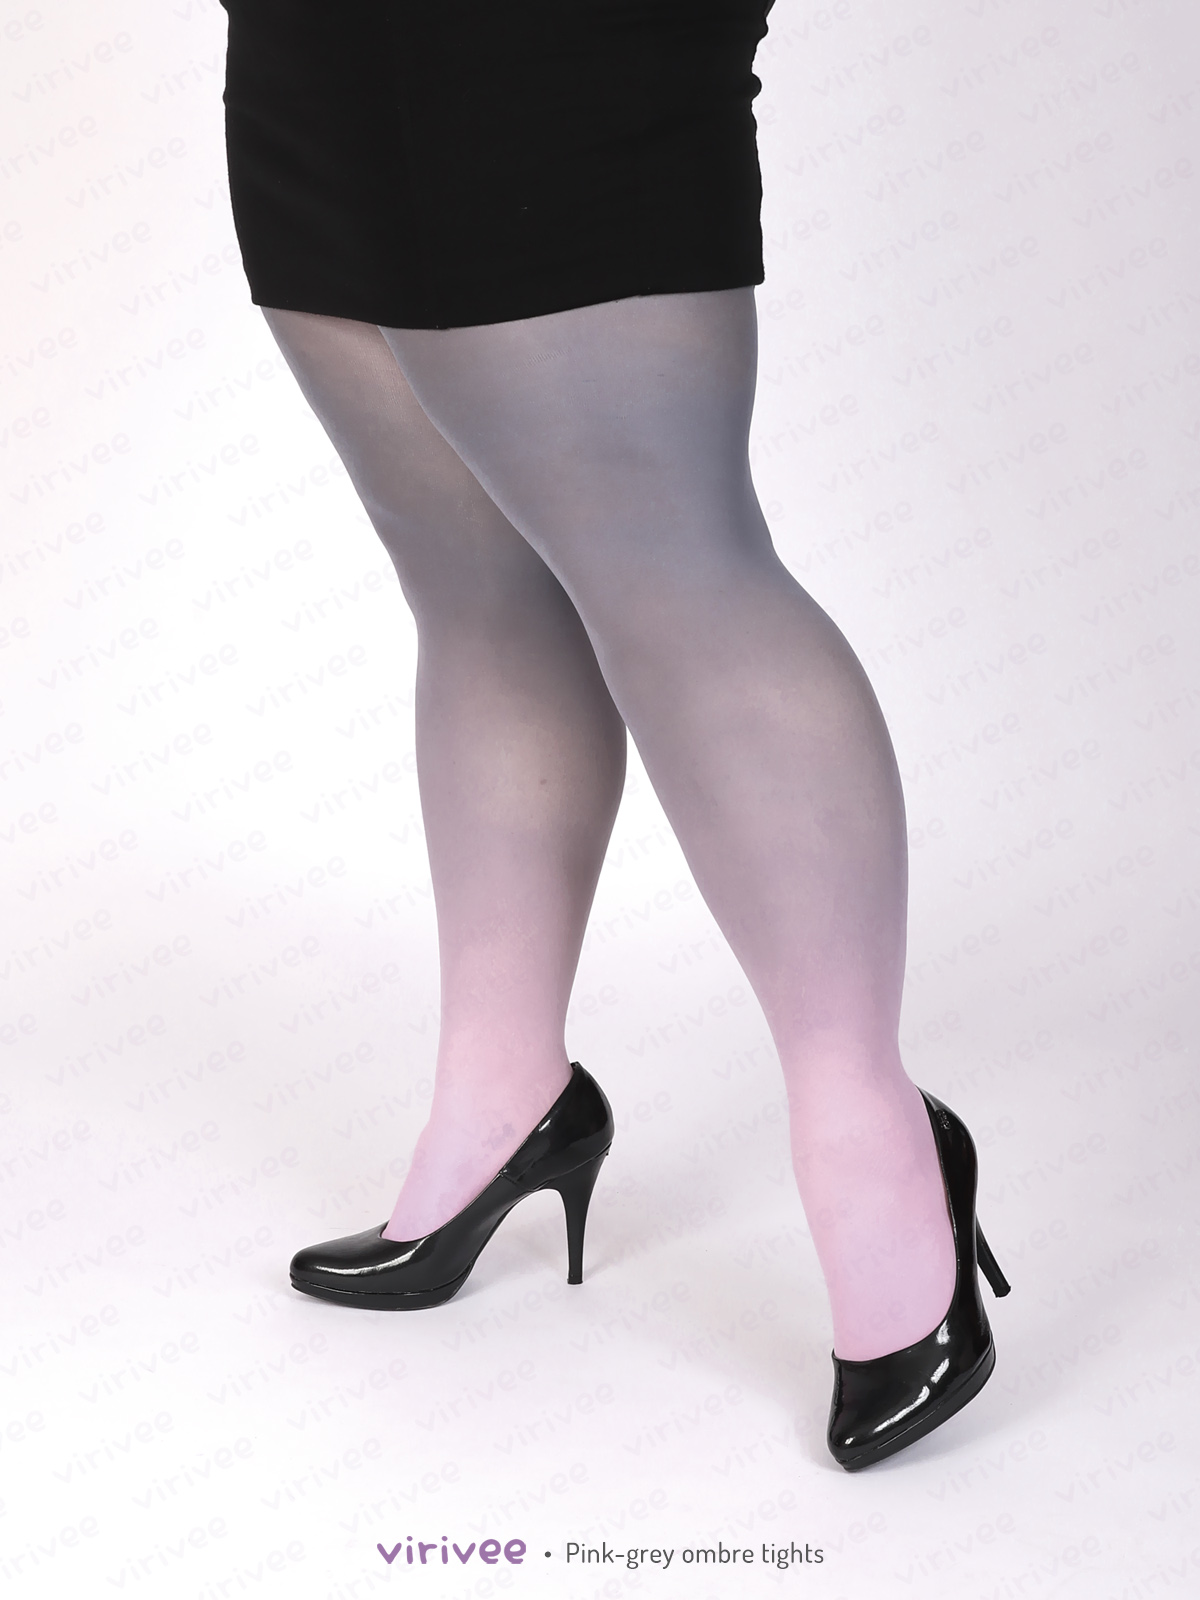 Plus size pink-grey ombre tights